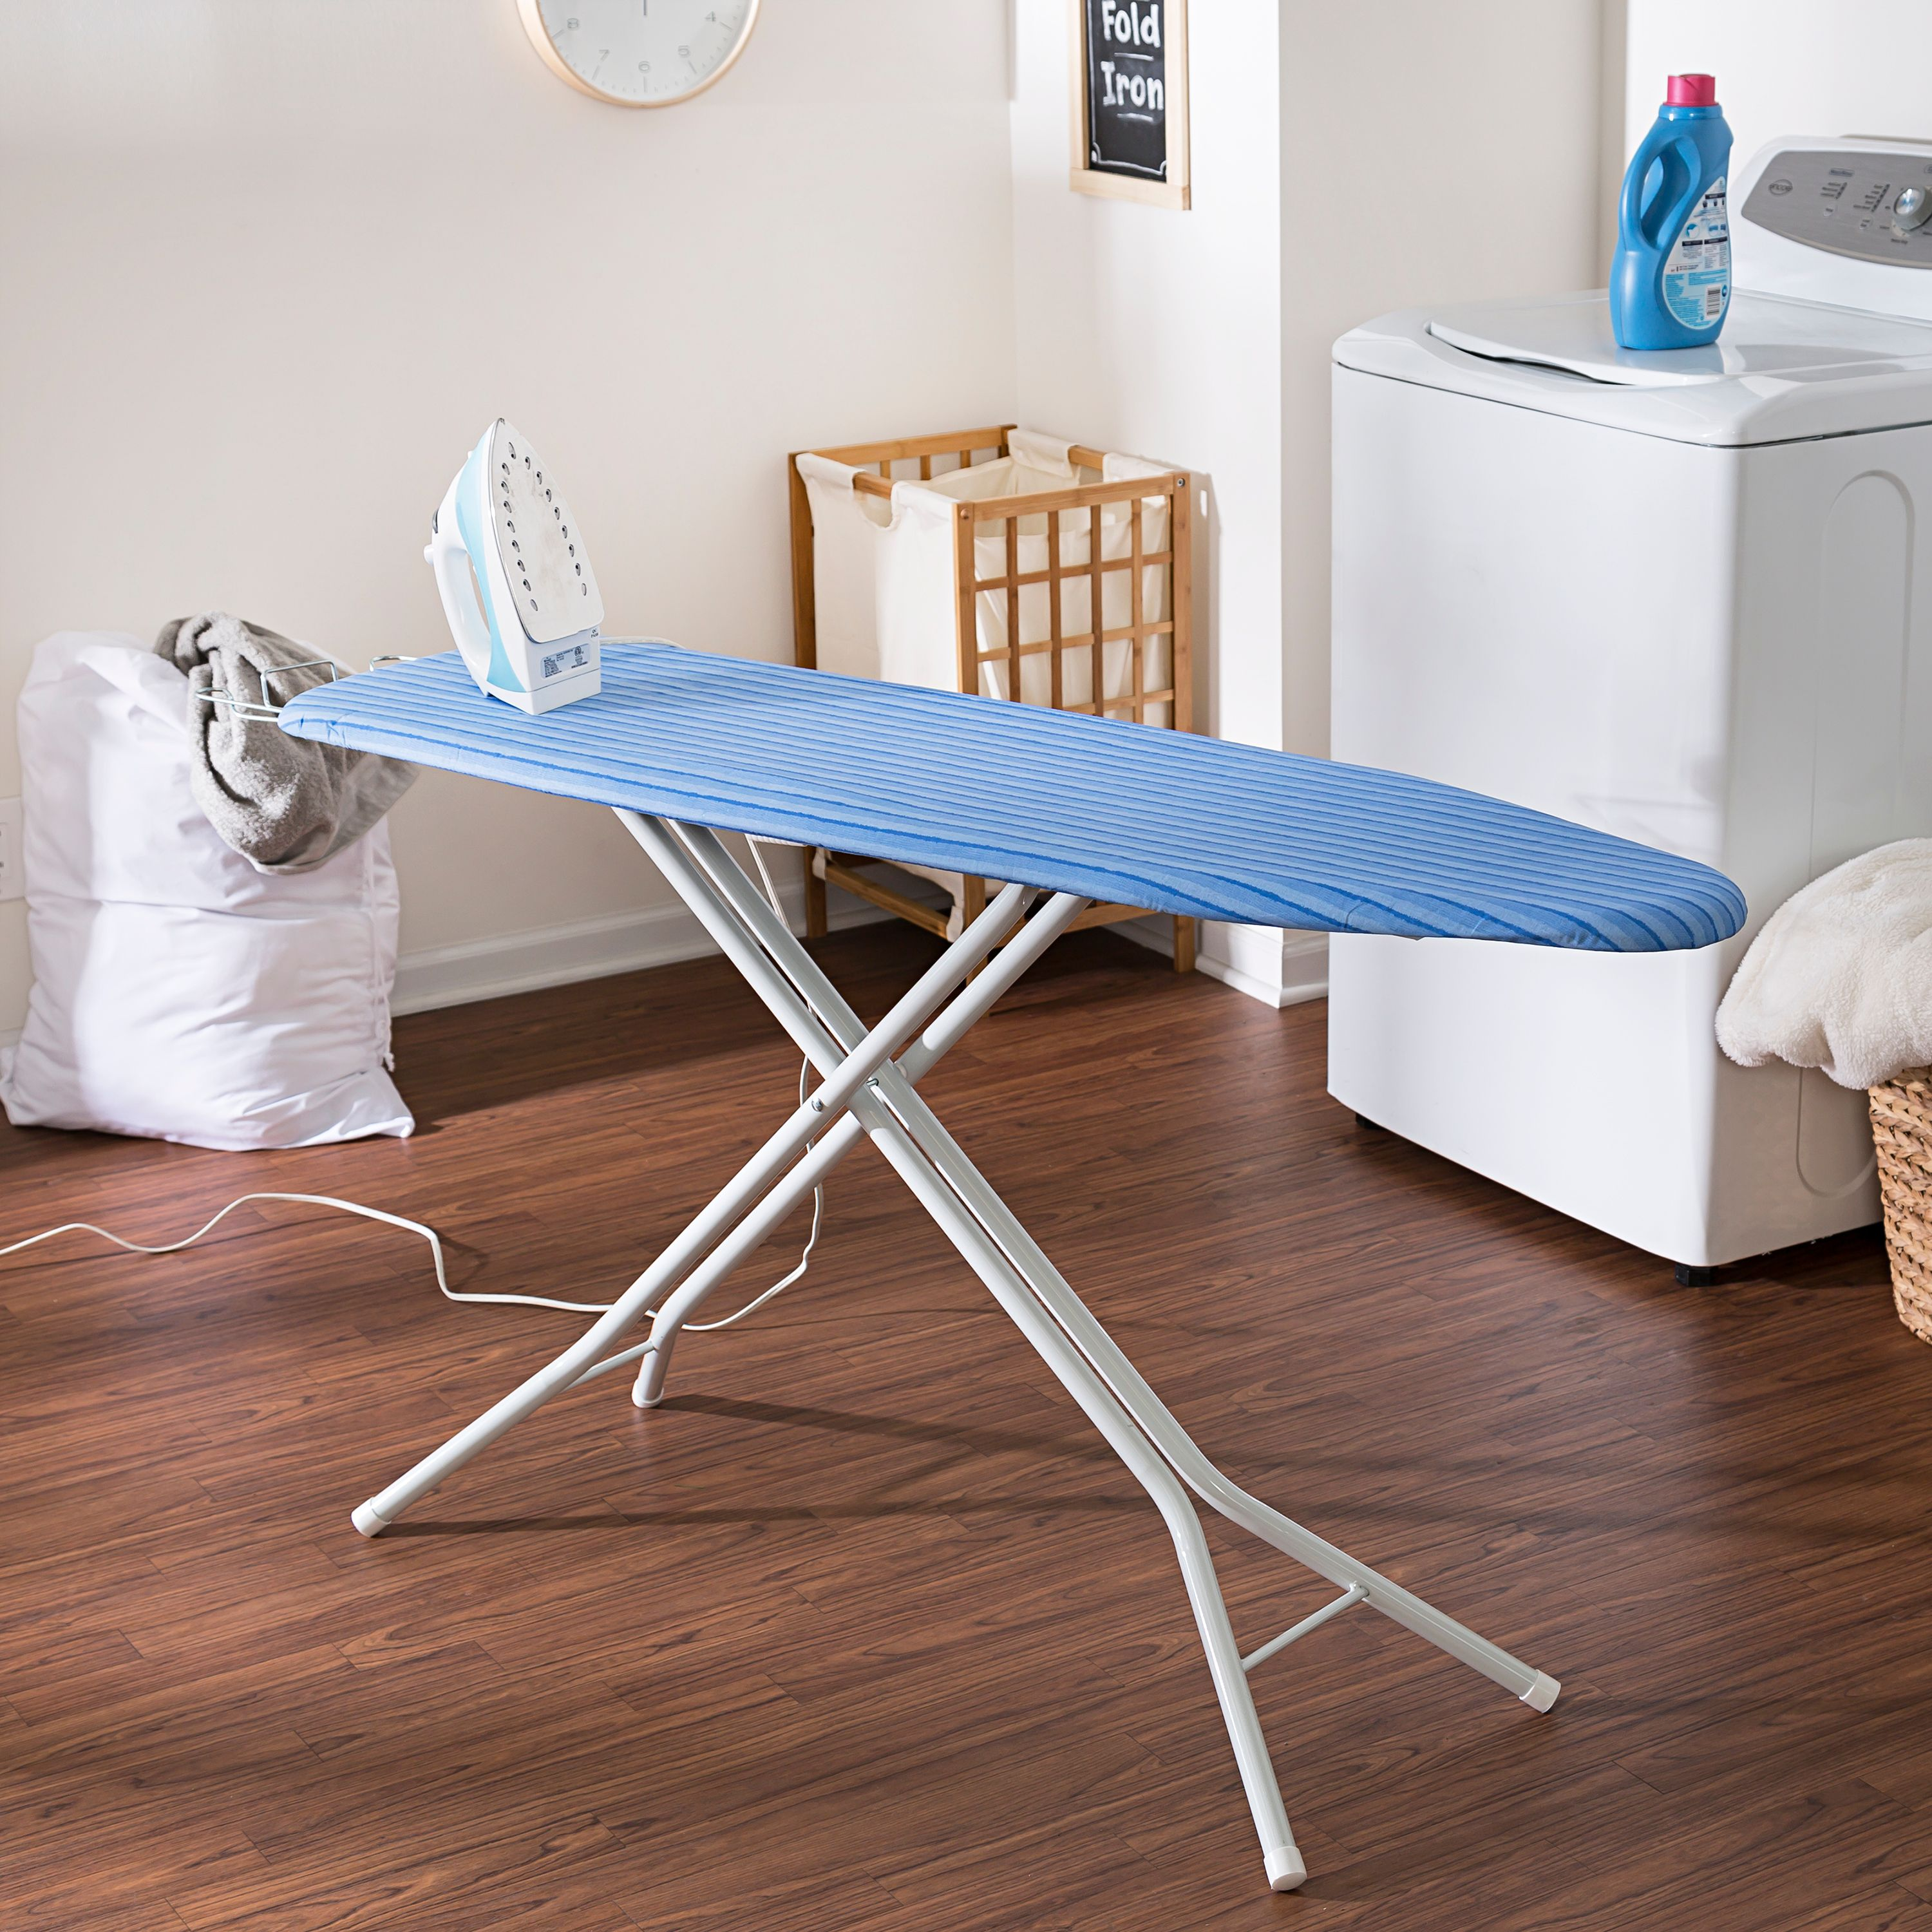 Captivating Honey Can Do Ironing Board With 4 Leg Stand And Retractable Iron Rest, Blue    Walmart.com